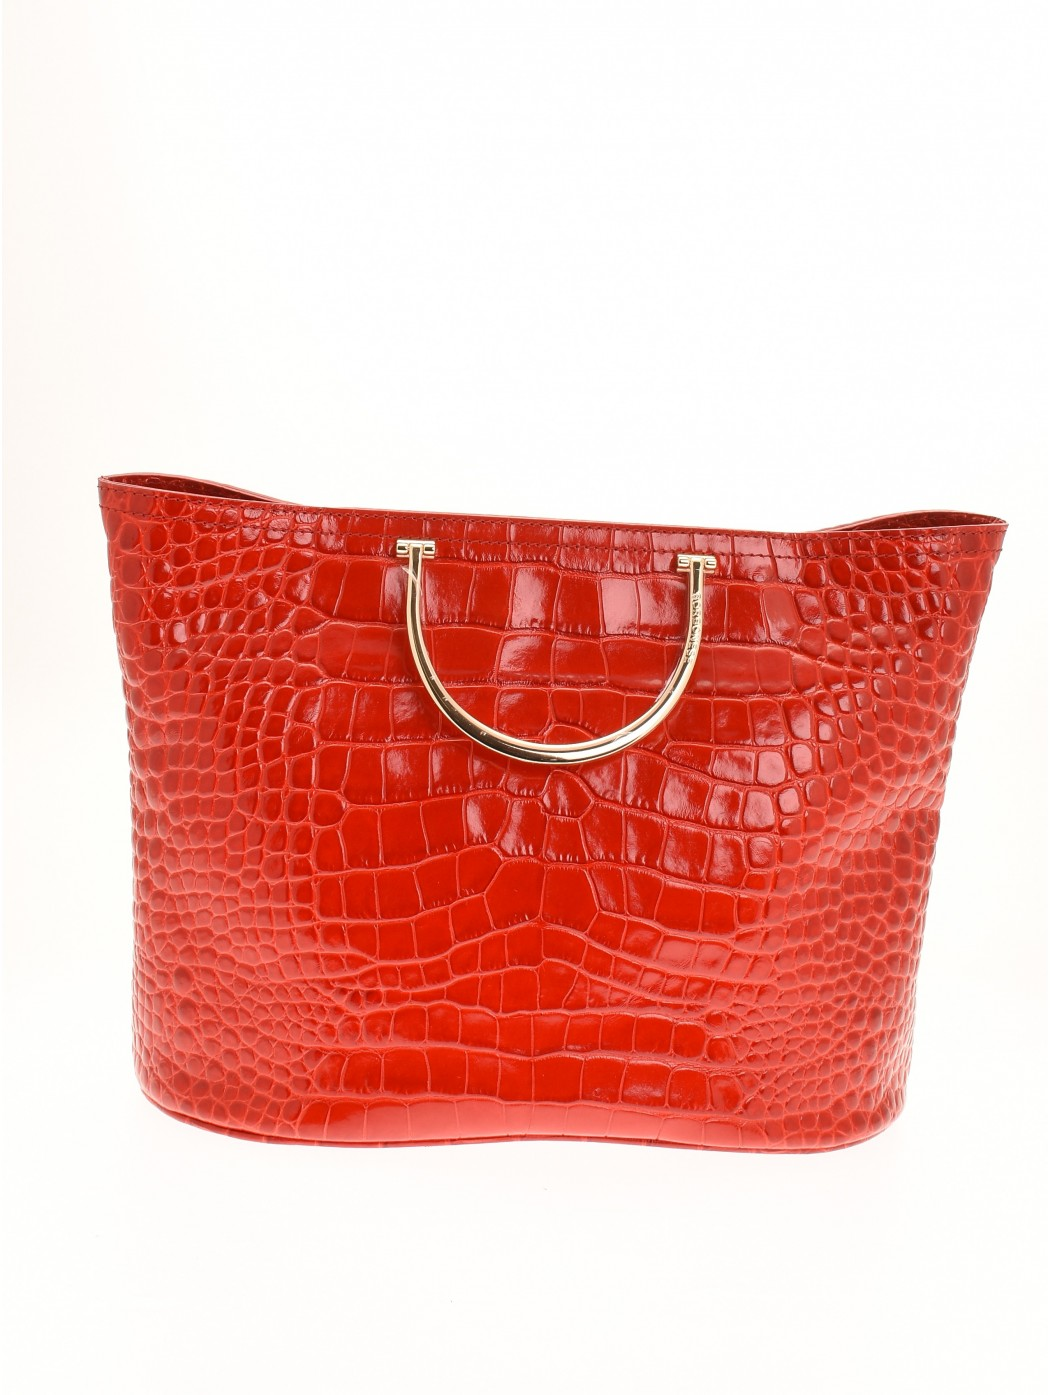 MINERVA BAG MEDIUM BORBONESE 924415I70105 V92